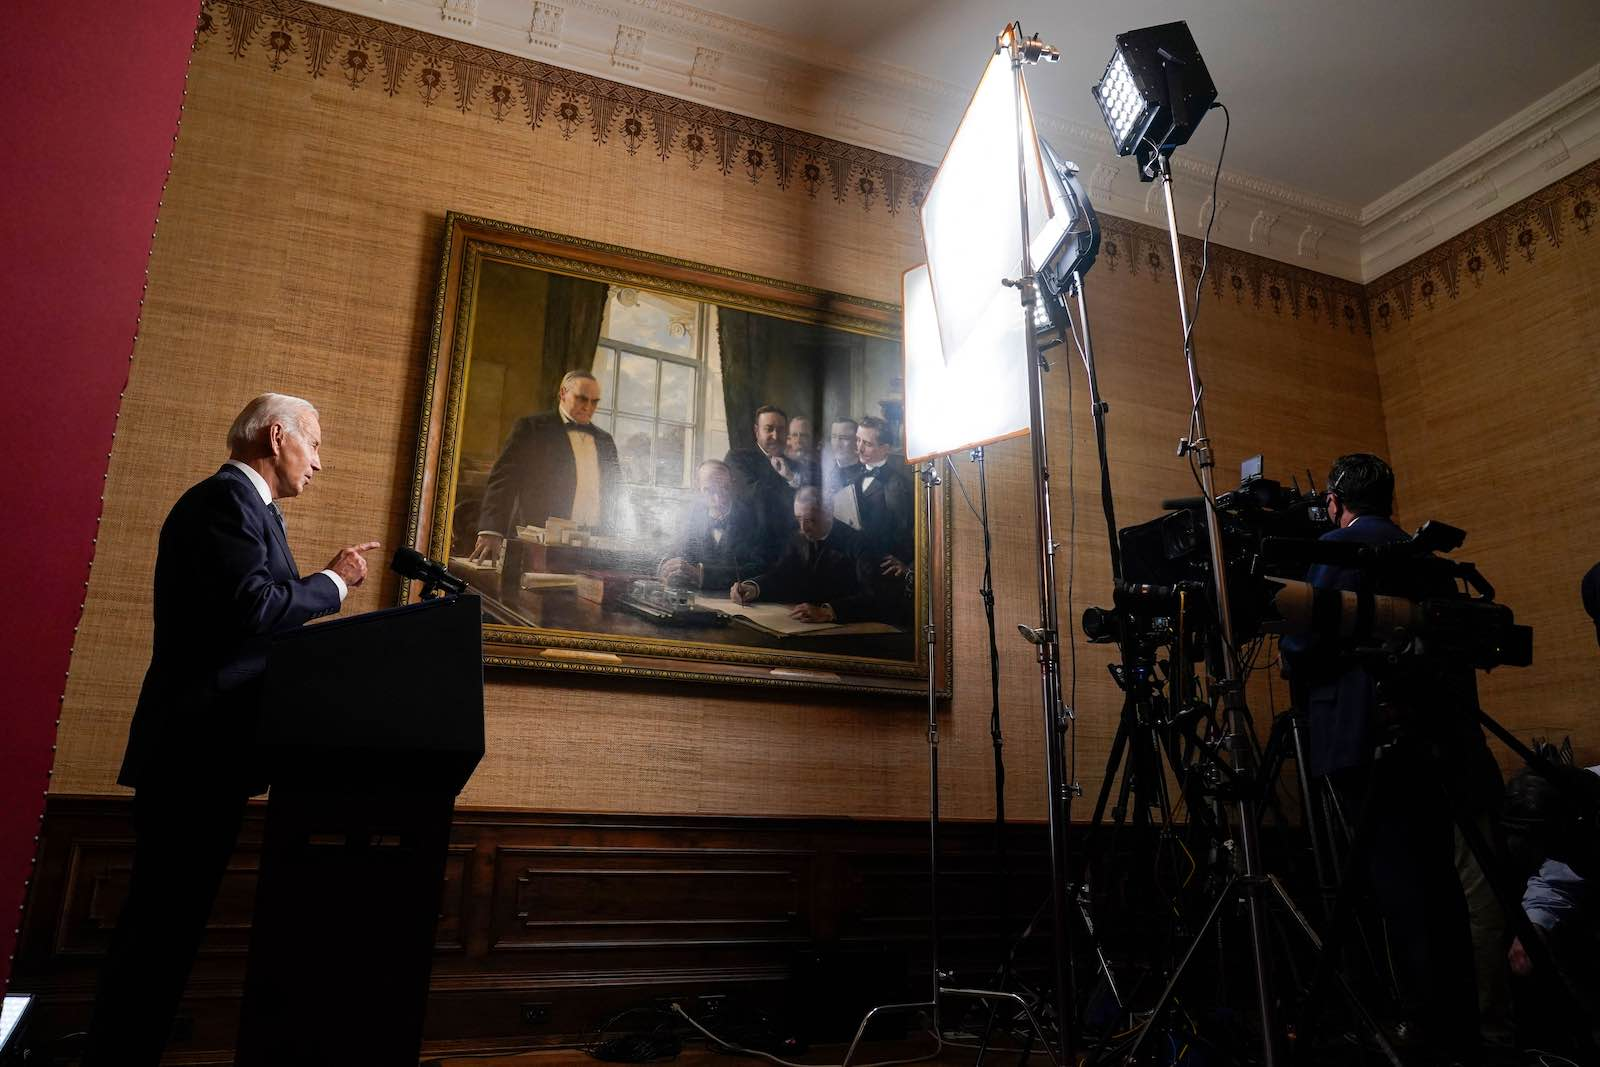 US President Joe Biden speaks in the White House about the withdrawal of US troops from Afghanistan, 14 April 2021 (Andrew Harnik/Pool/AFP via Getty Images)